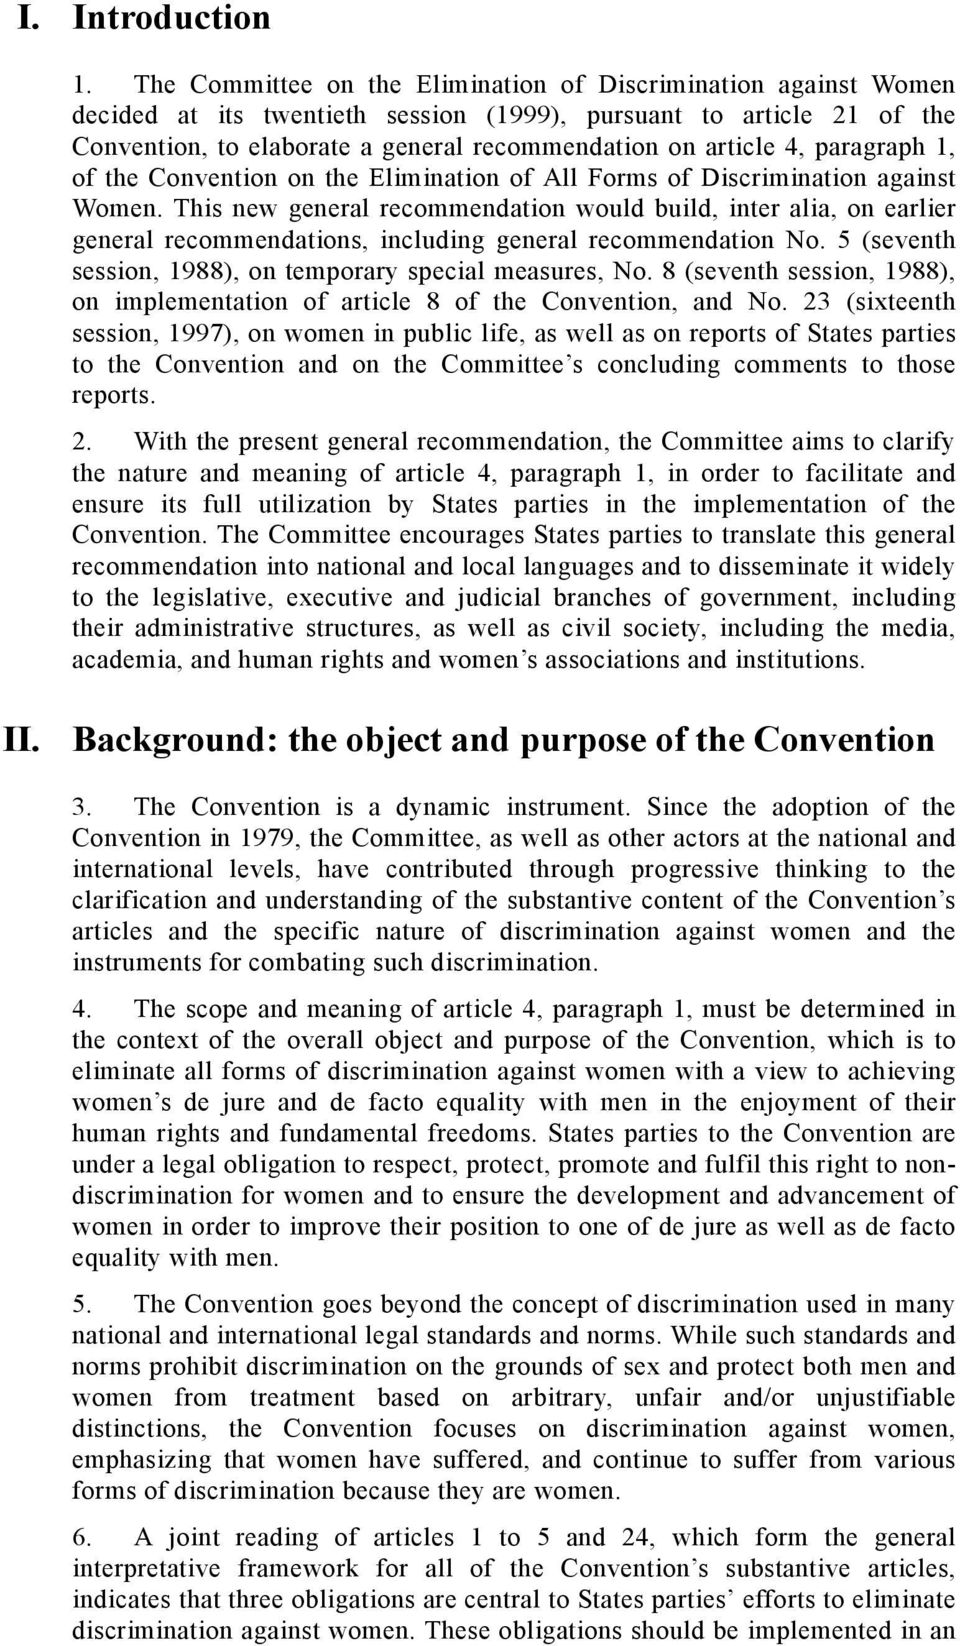 paragraph 1, of the Convention on the Elimination of All Forms of Discrimination against Women.